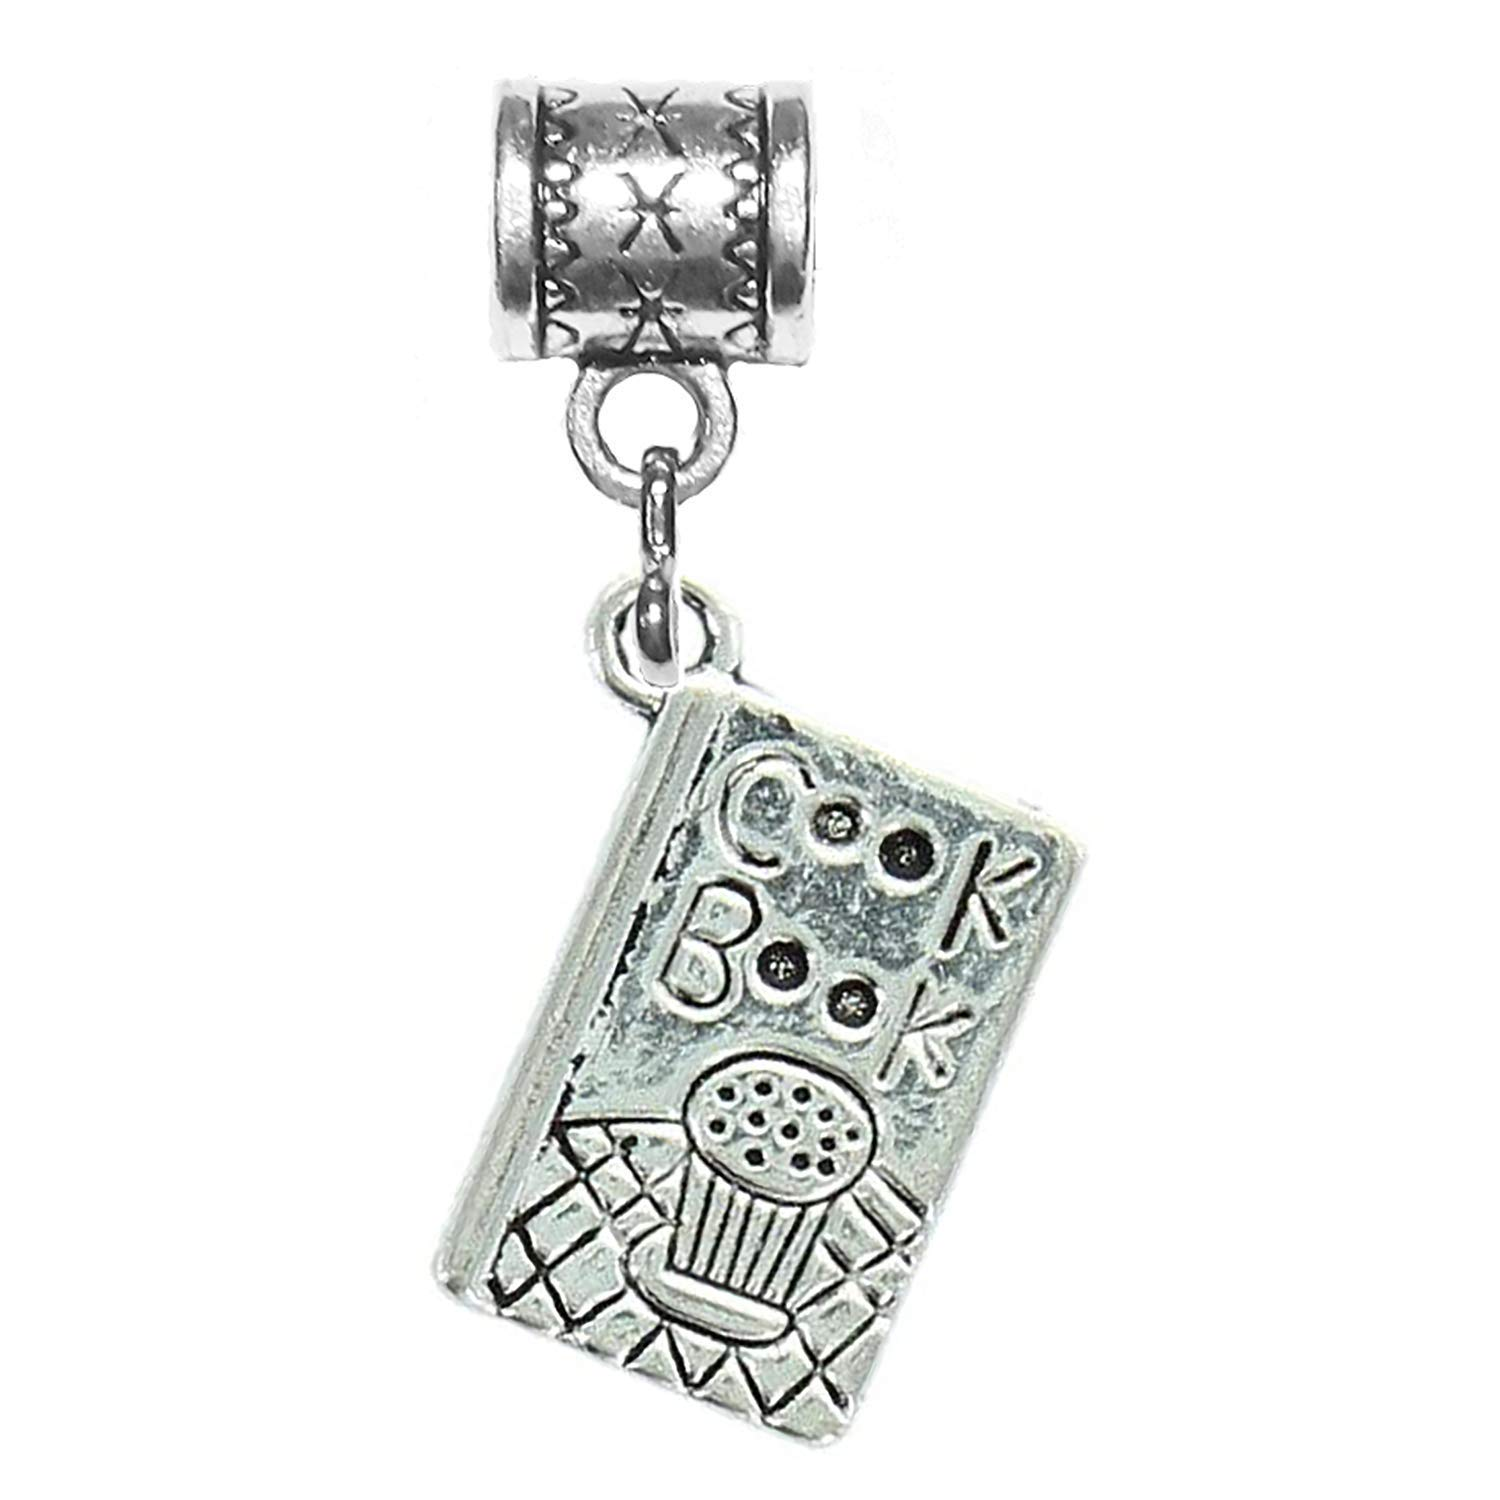 """""""Cook book charm"""" is a Tibetan Silver Hanging charm by Mossy Cabin for large hole snake chain charm bracelet, or add to a pendant necklace, neck chain or key chain"""